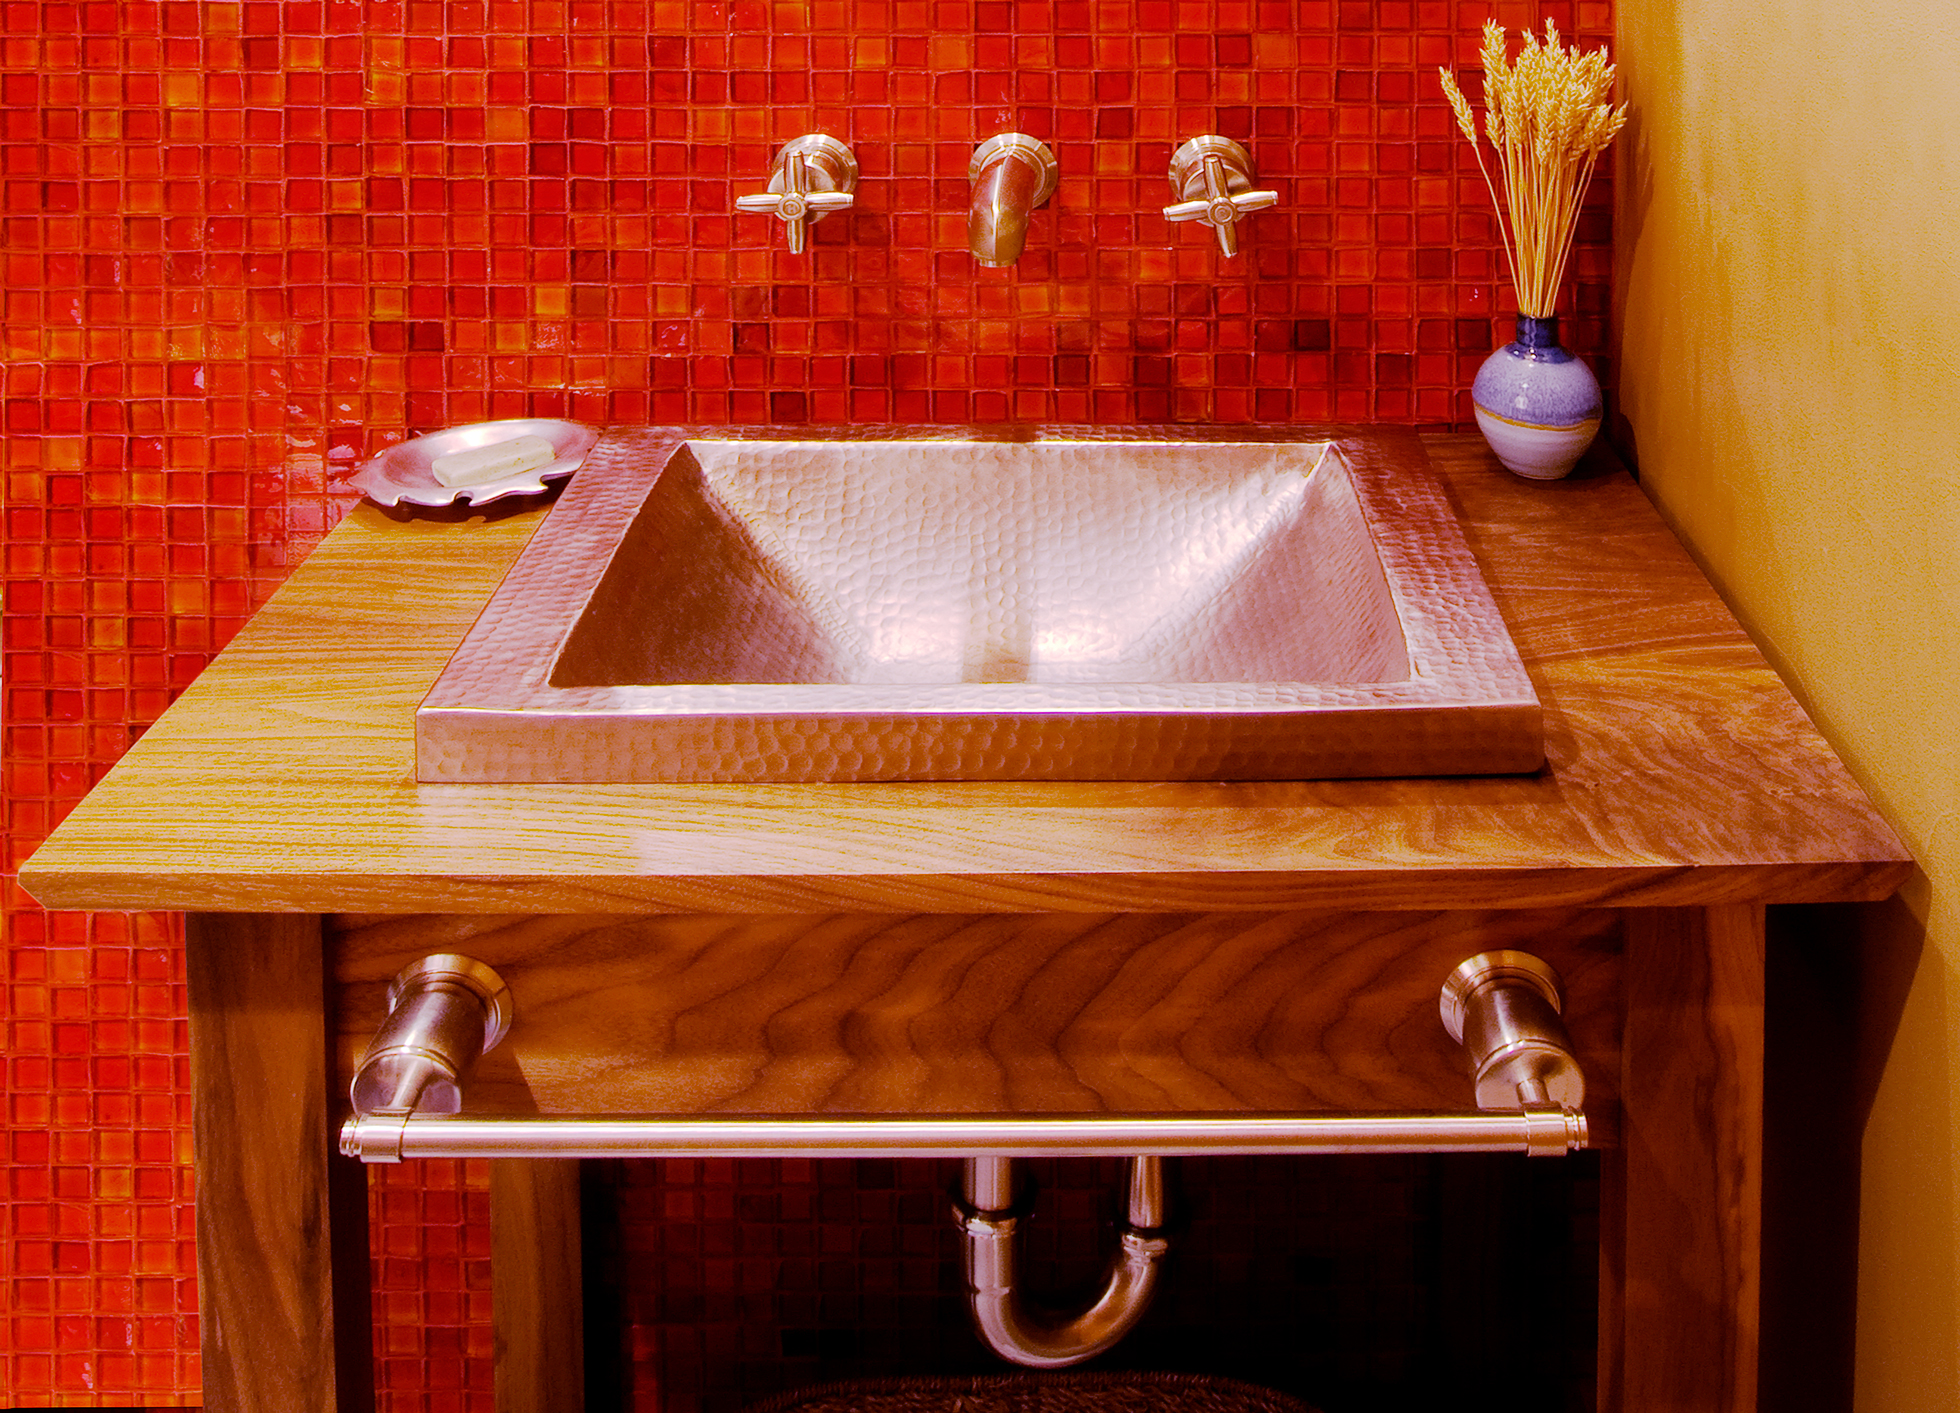 A red tiled bathroom wall with stainless sink